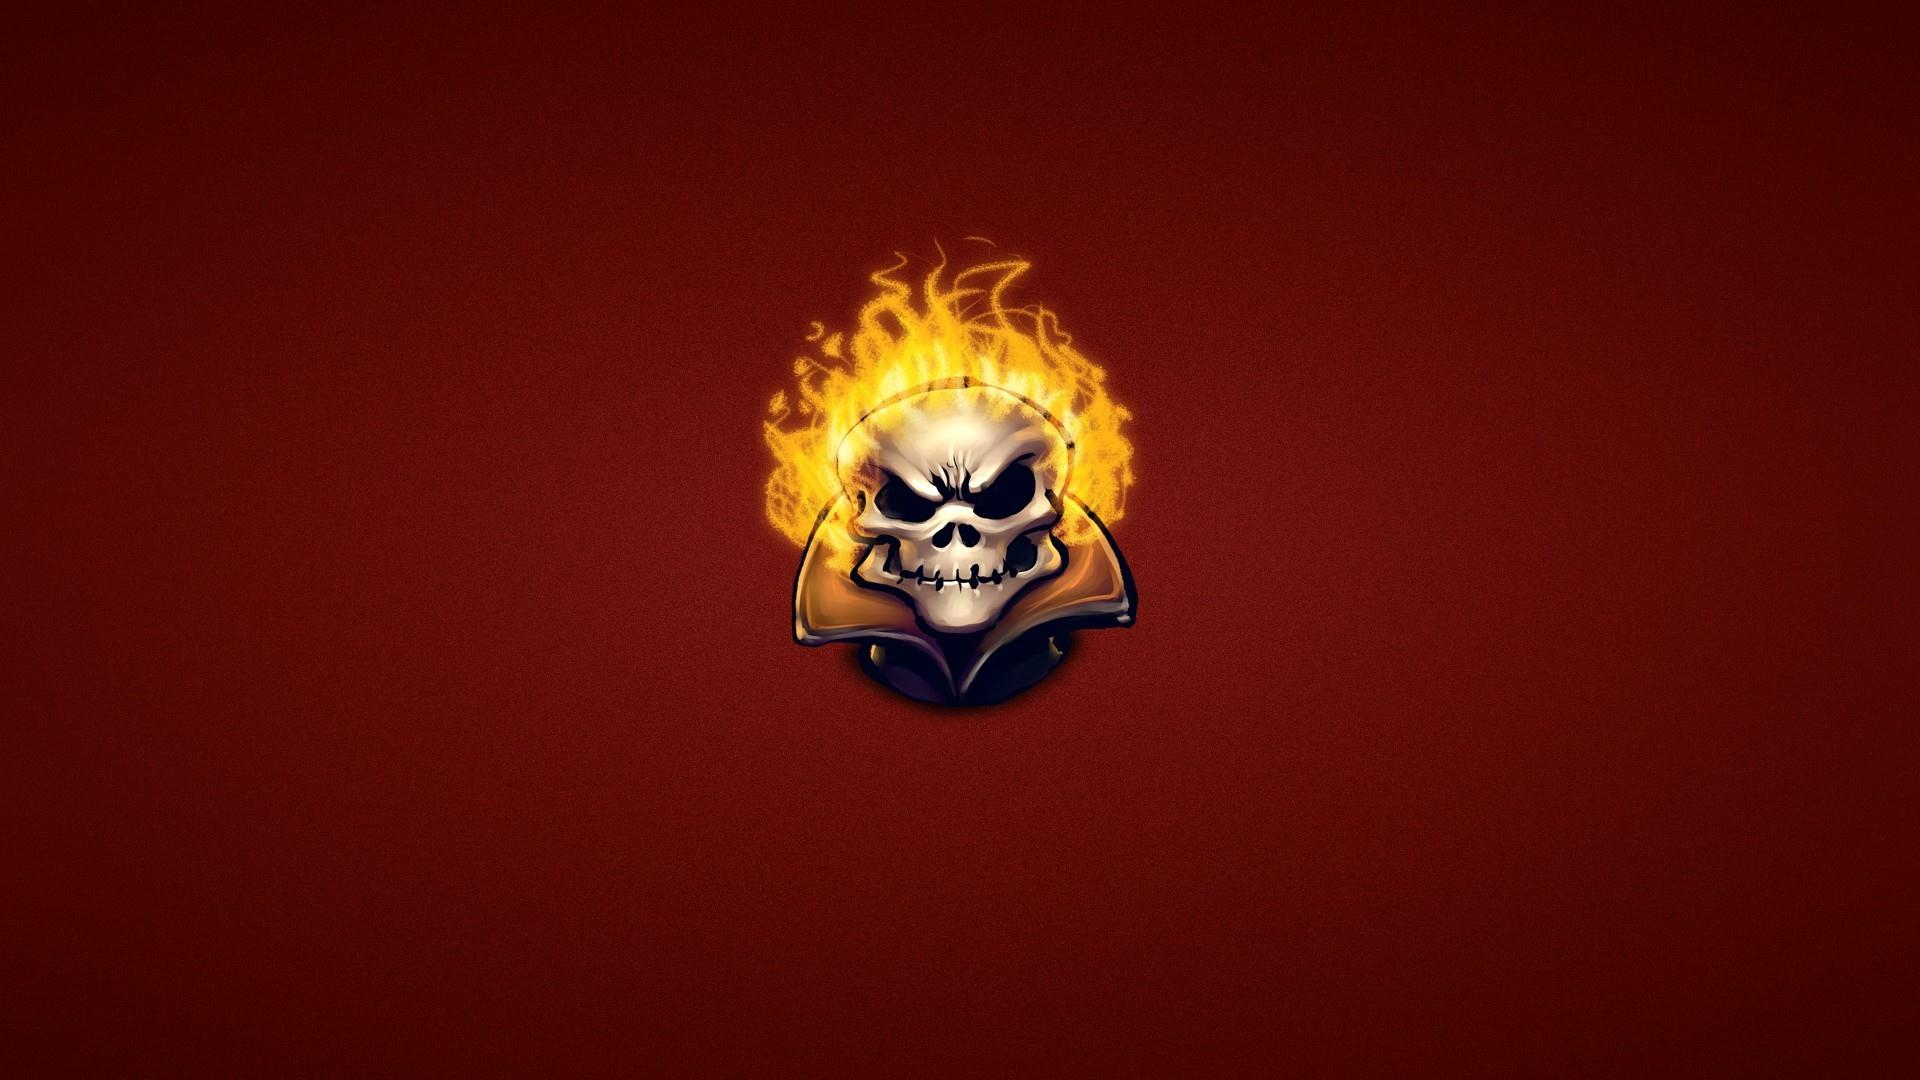 Ghost Rider Wallpaper Collection  1920x1080